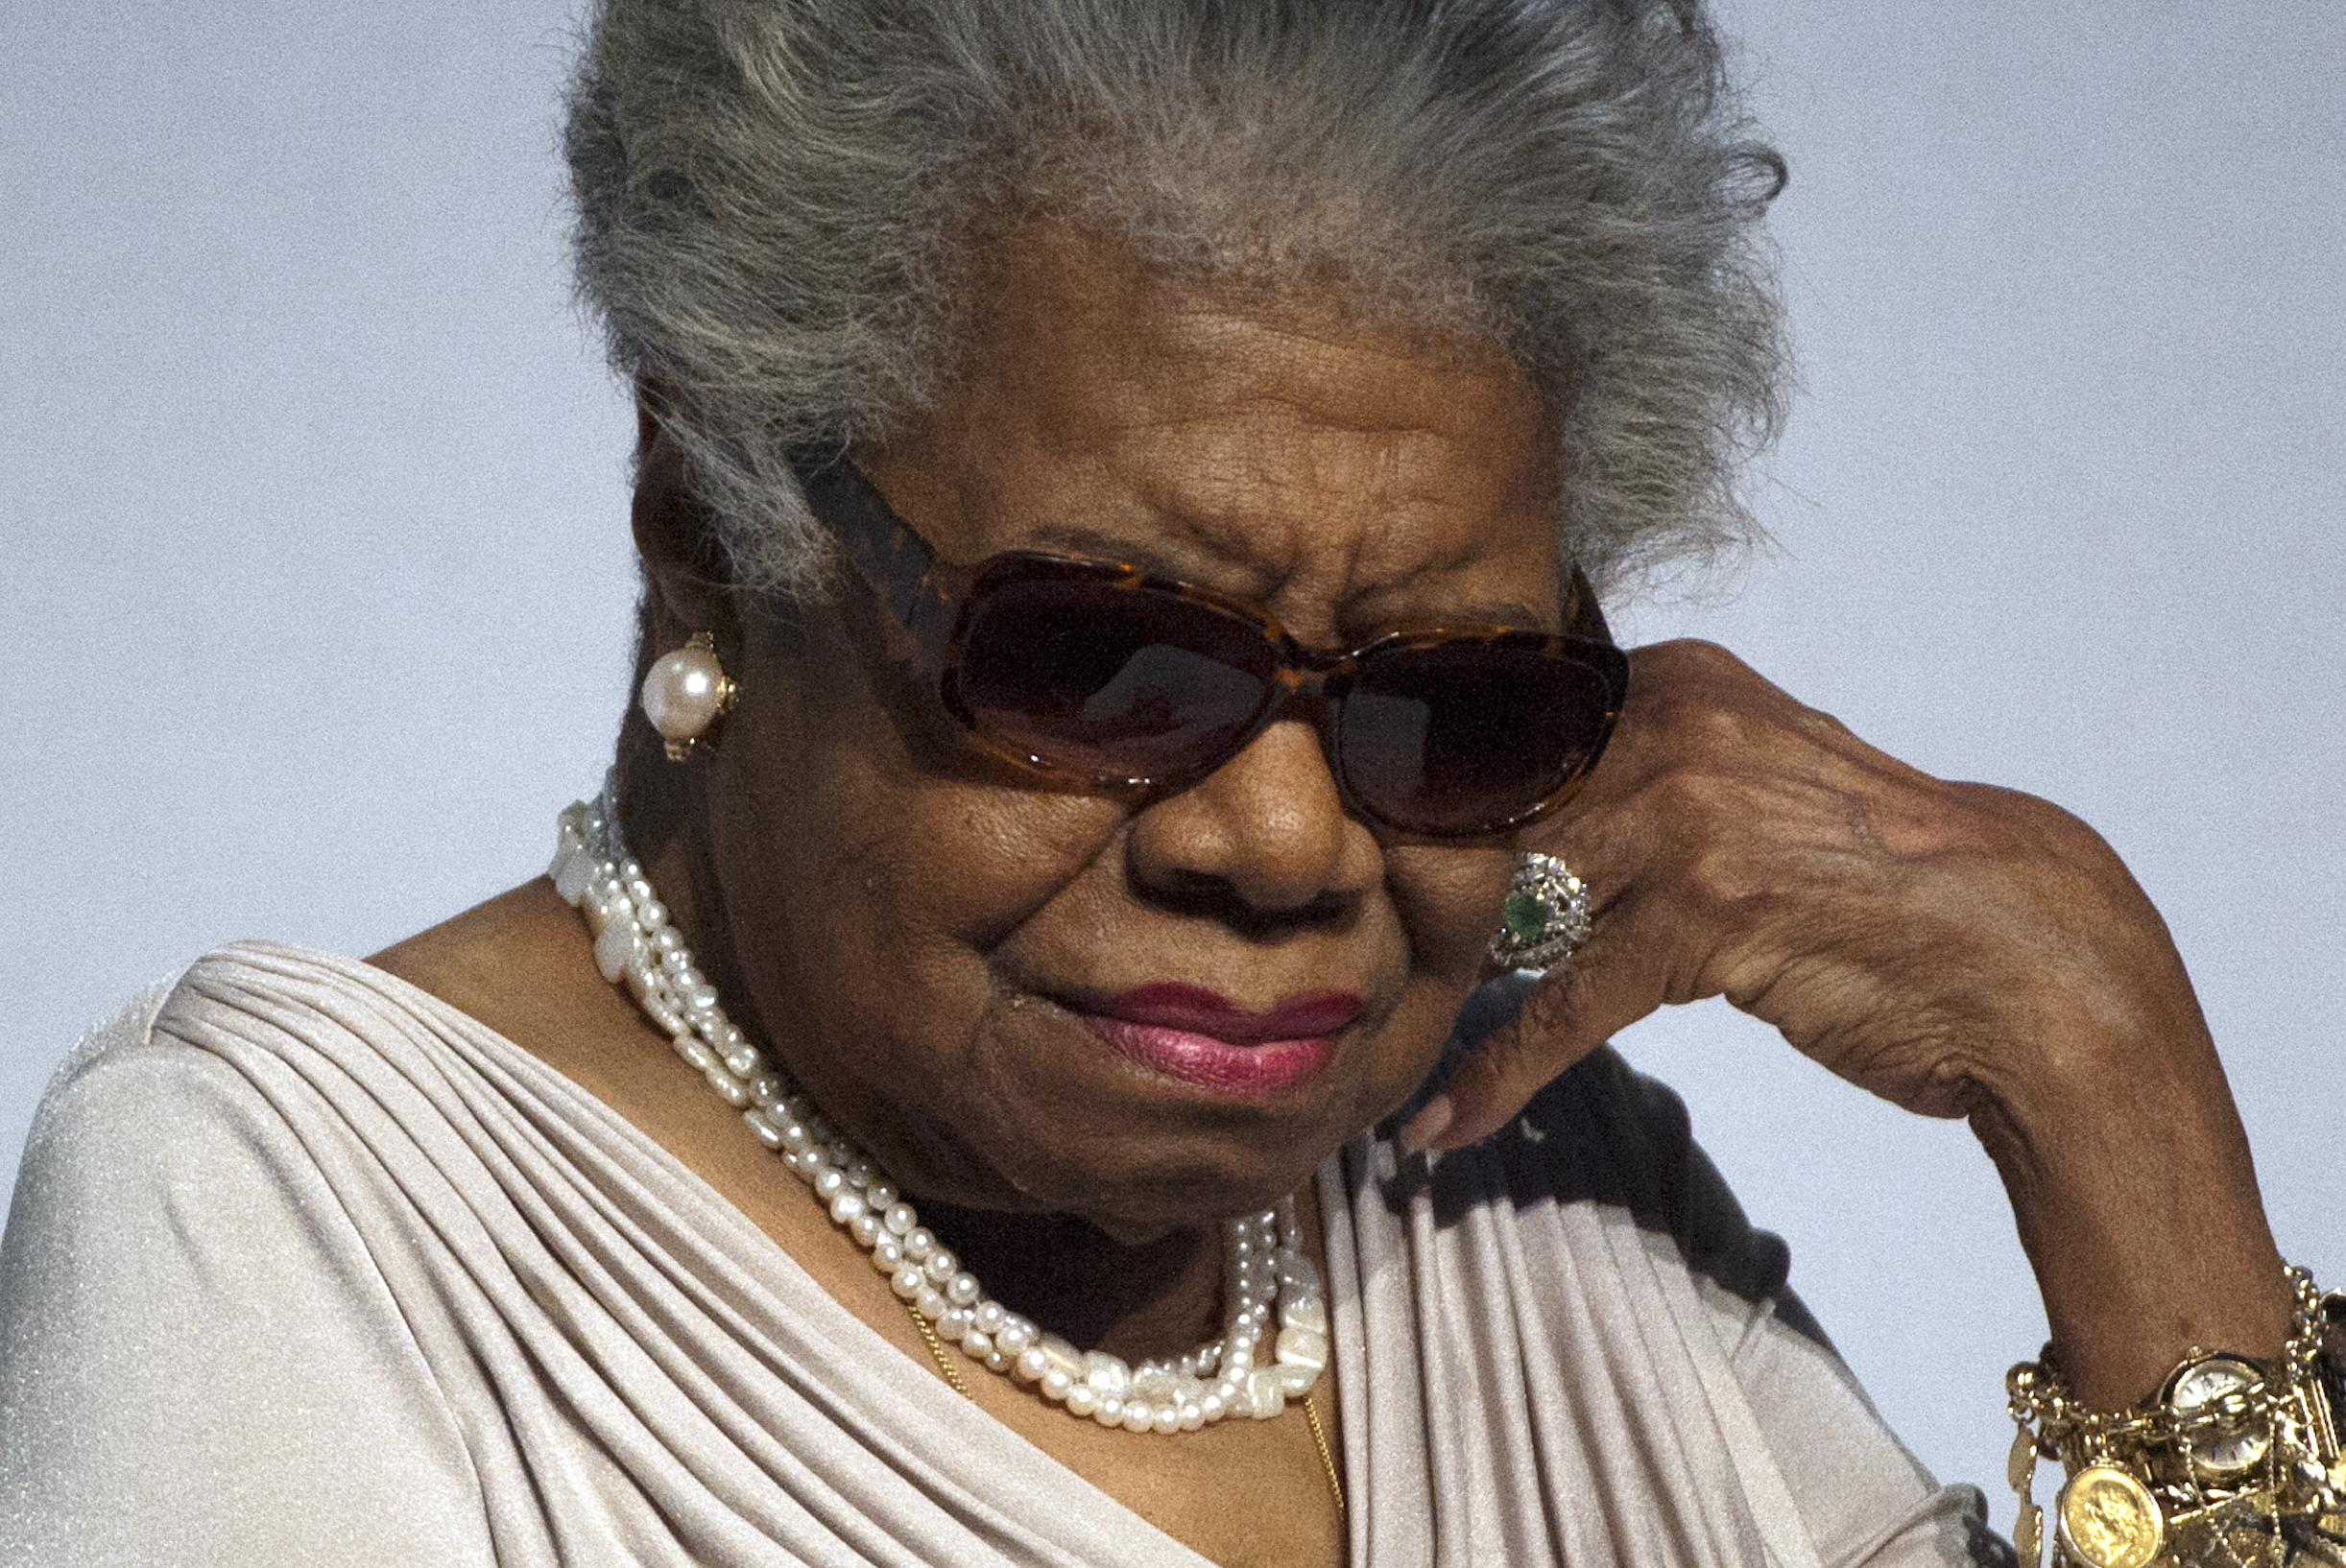 Keynote speaker Maya Angelou discusses the age of wisdom, the aging community and how to lead positive change.